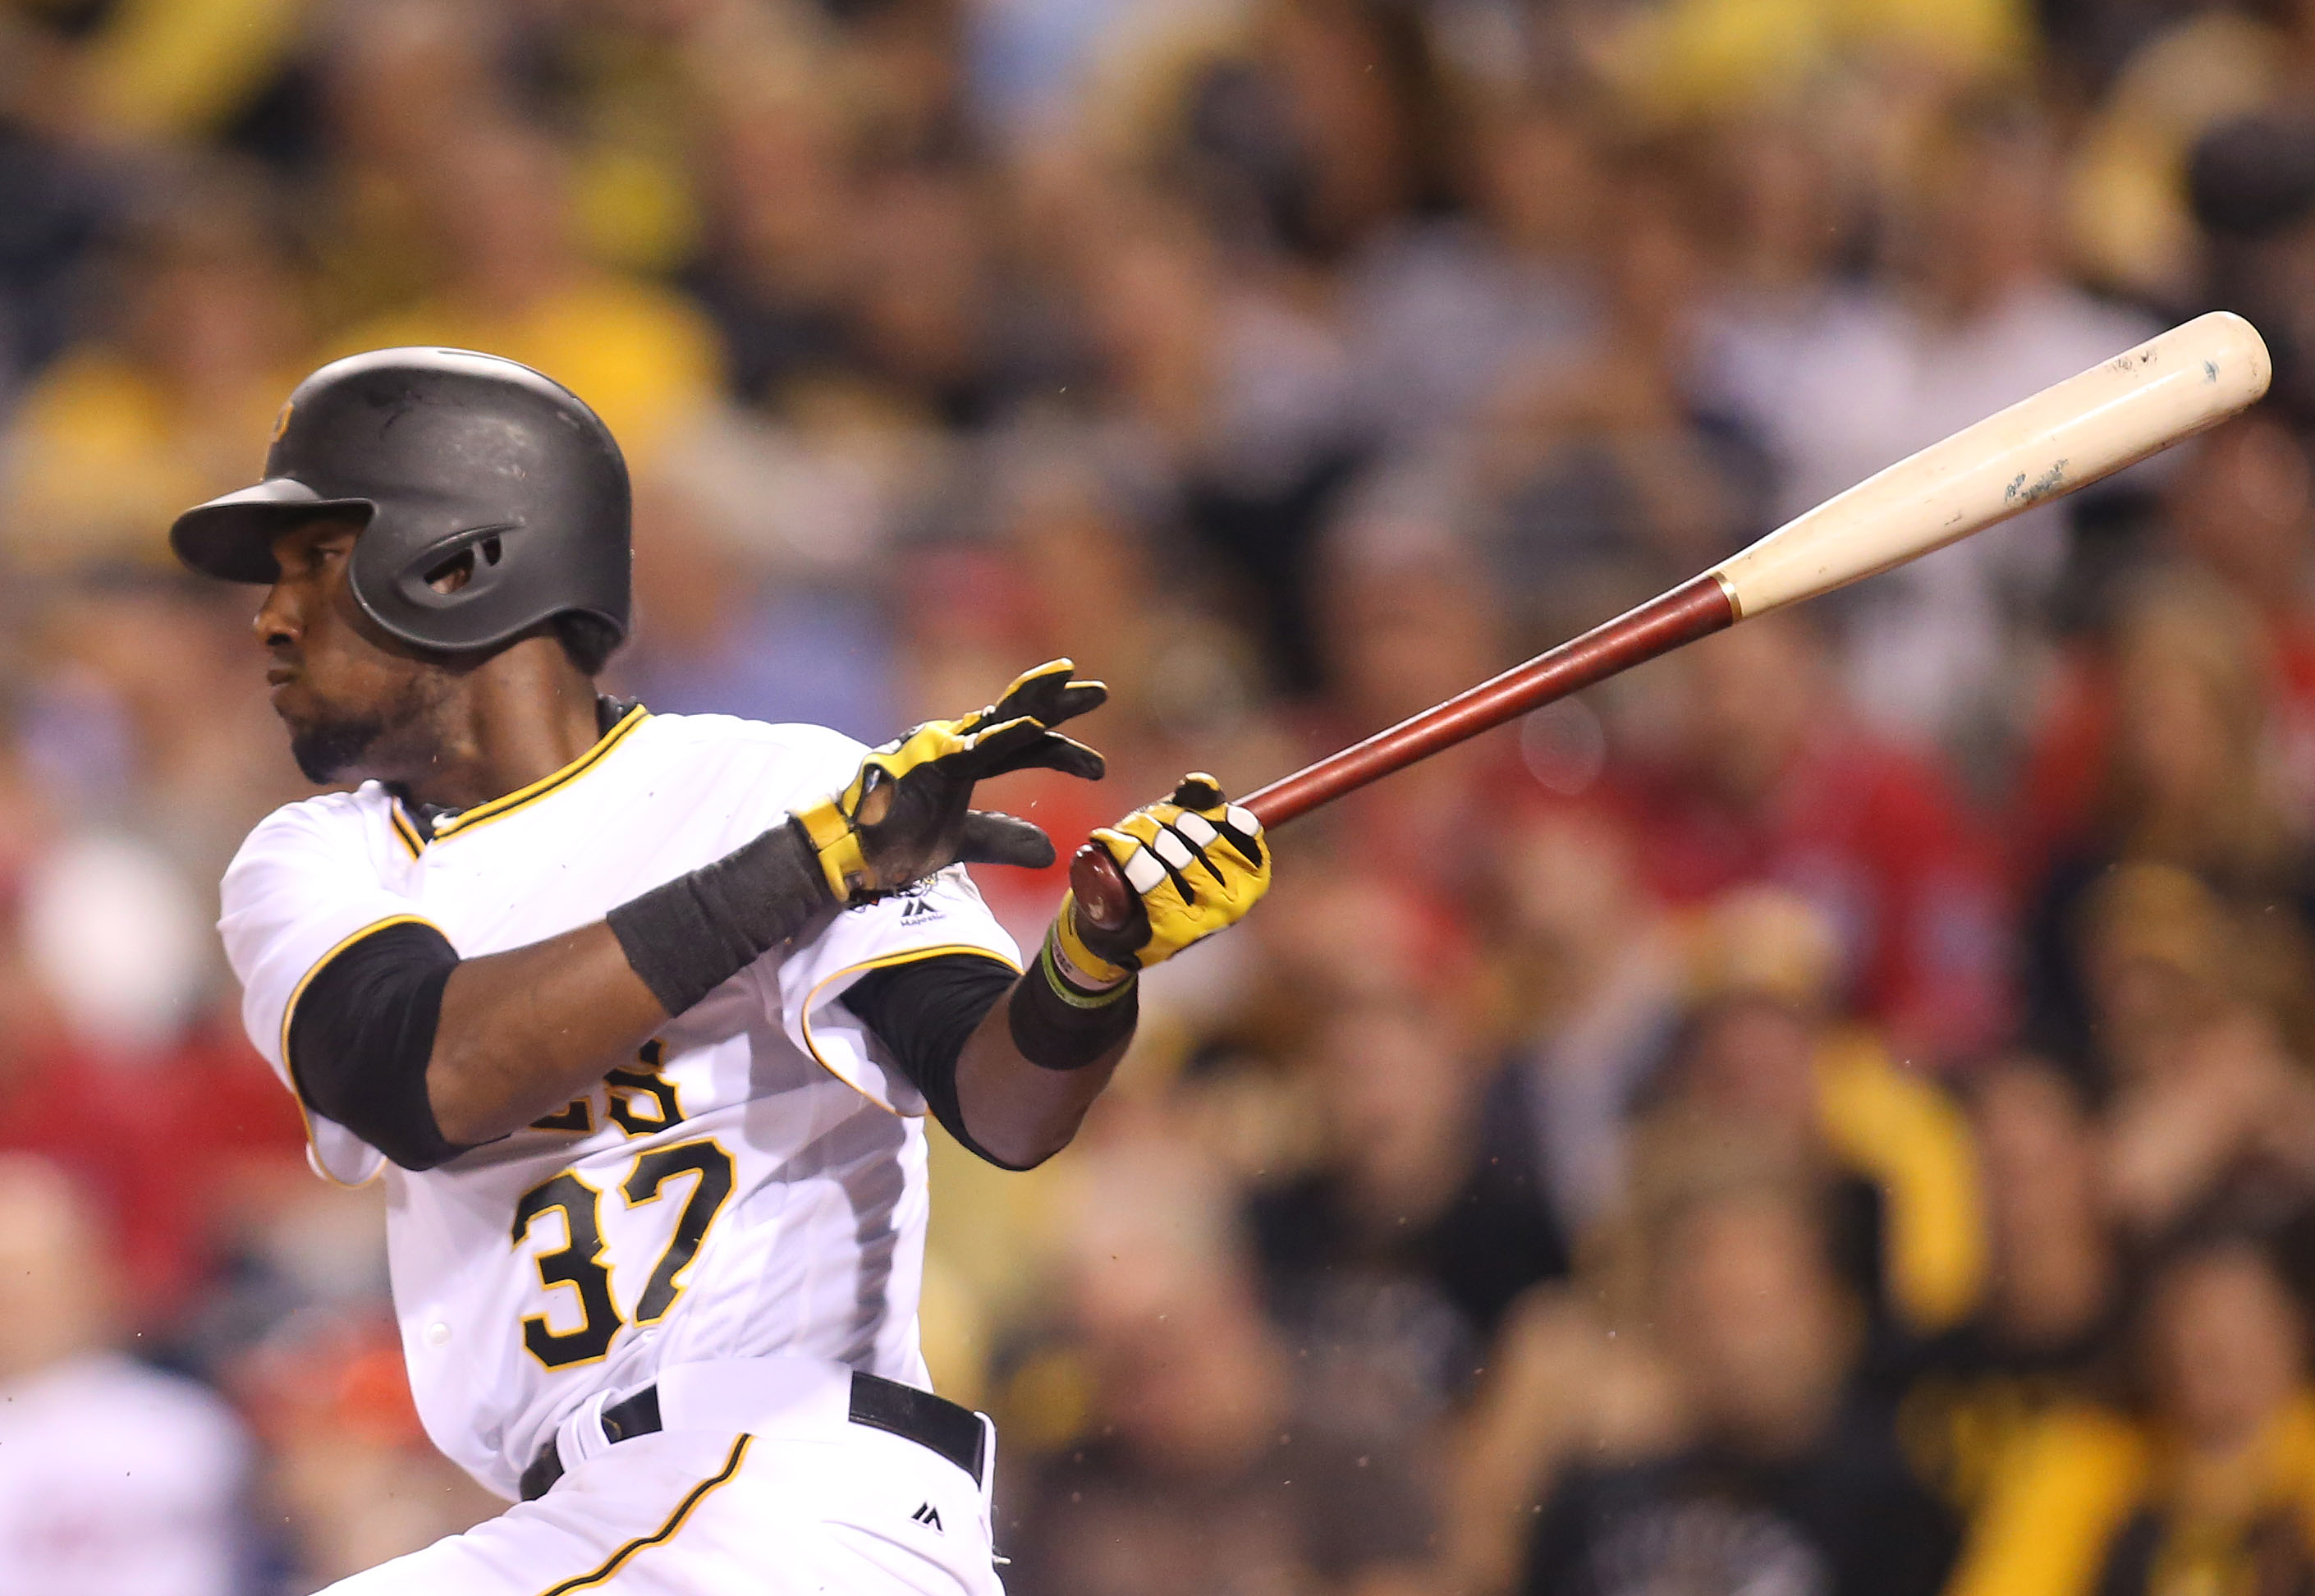 Pittsburgh Pirates: Pittsburgh Pirates Players Set To Benefit From The WBC